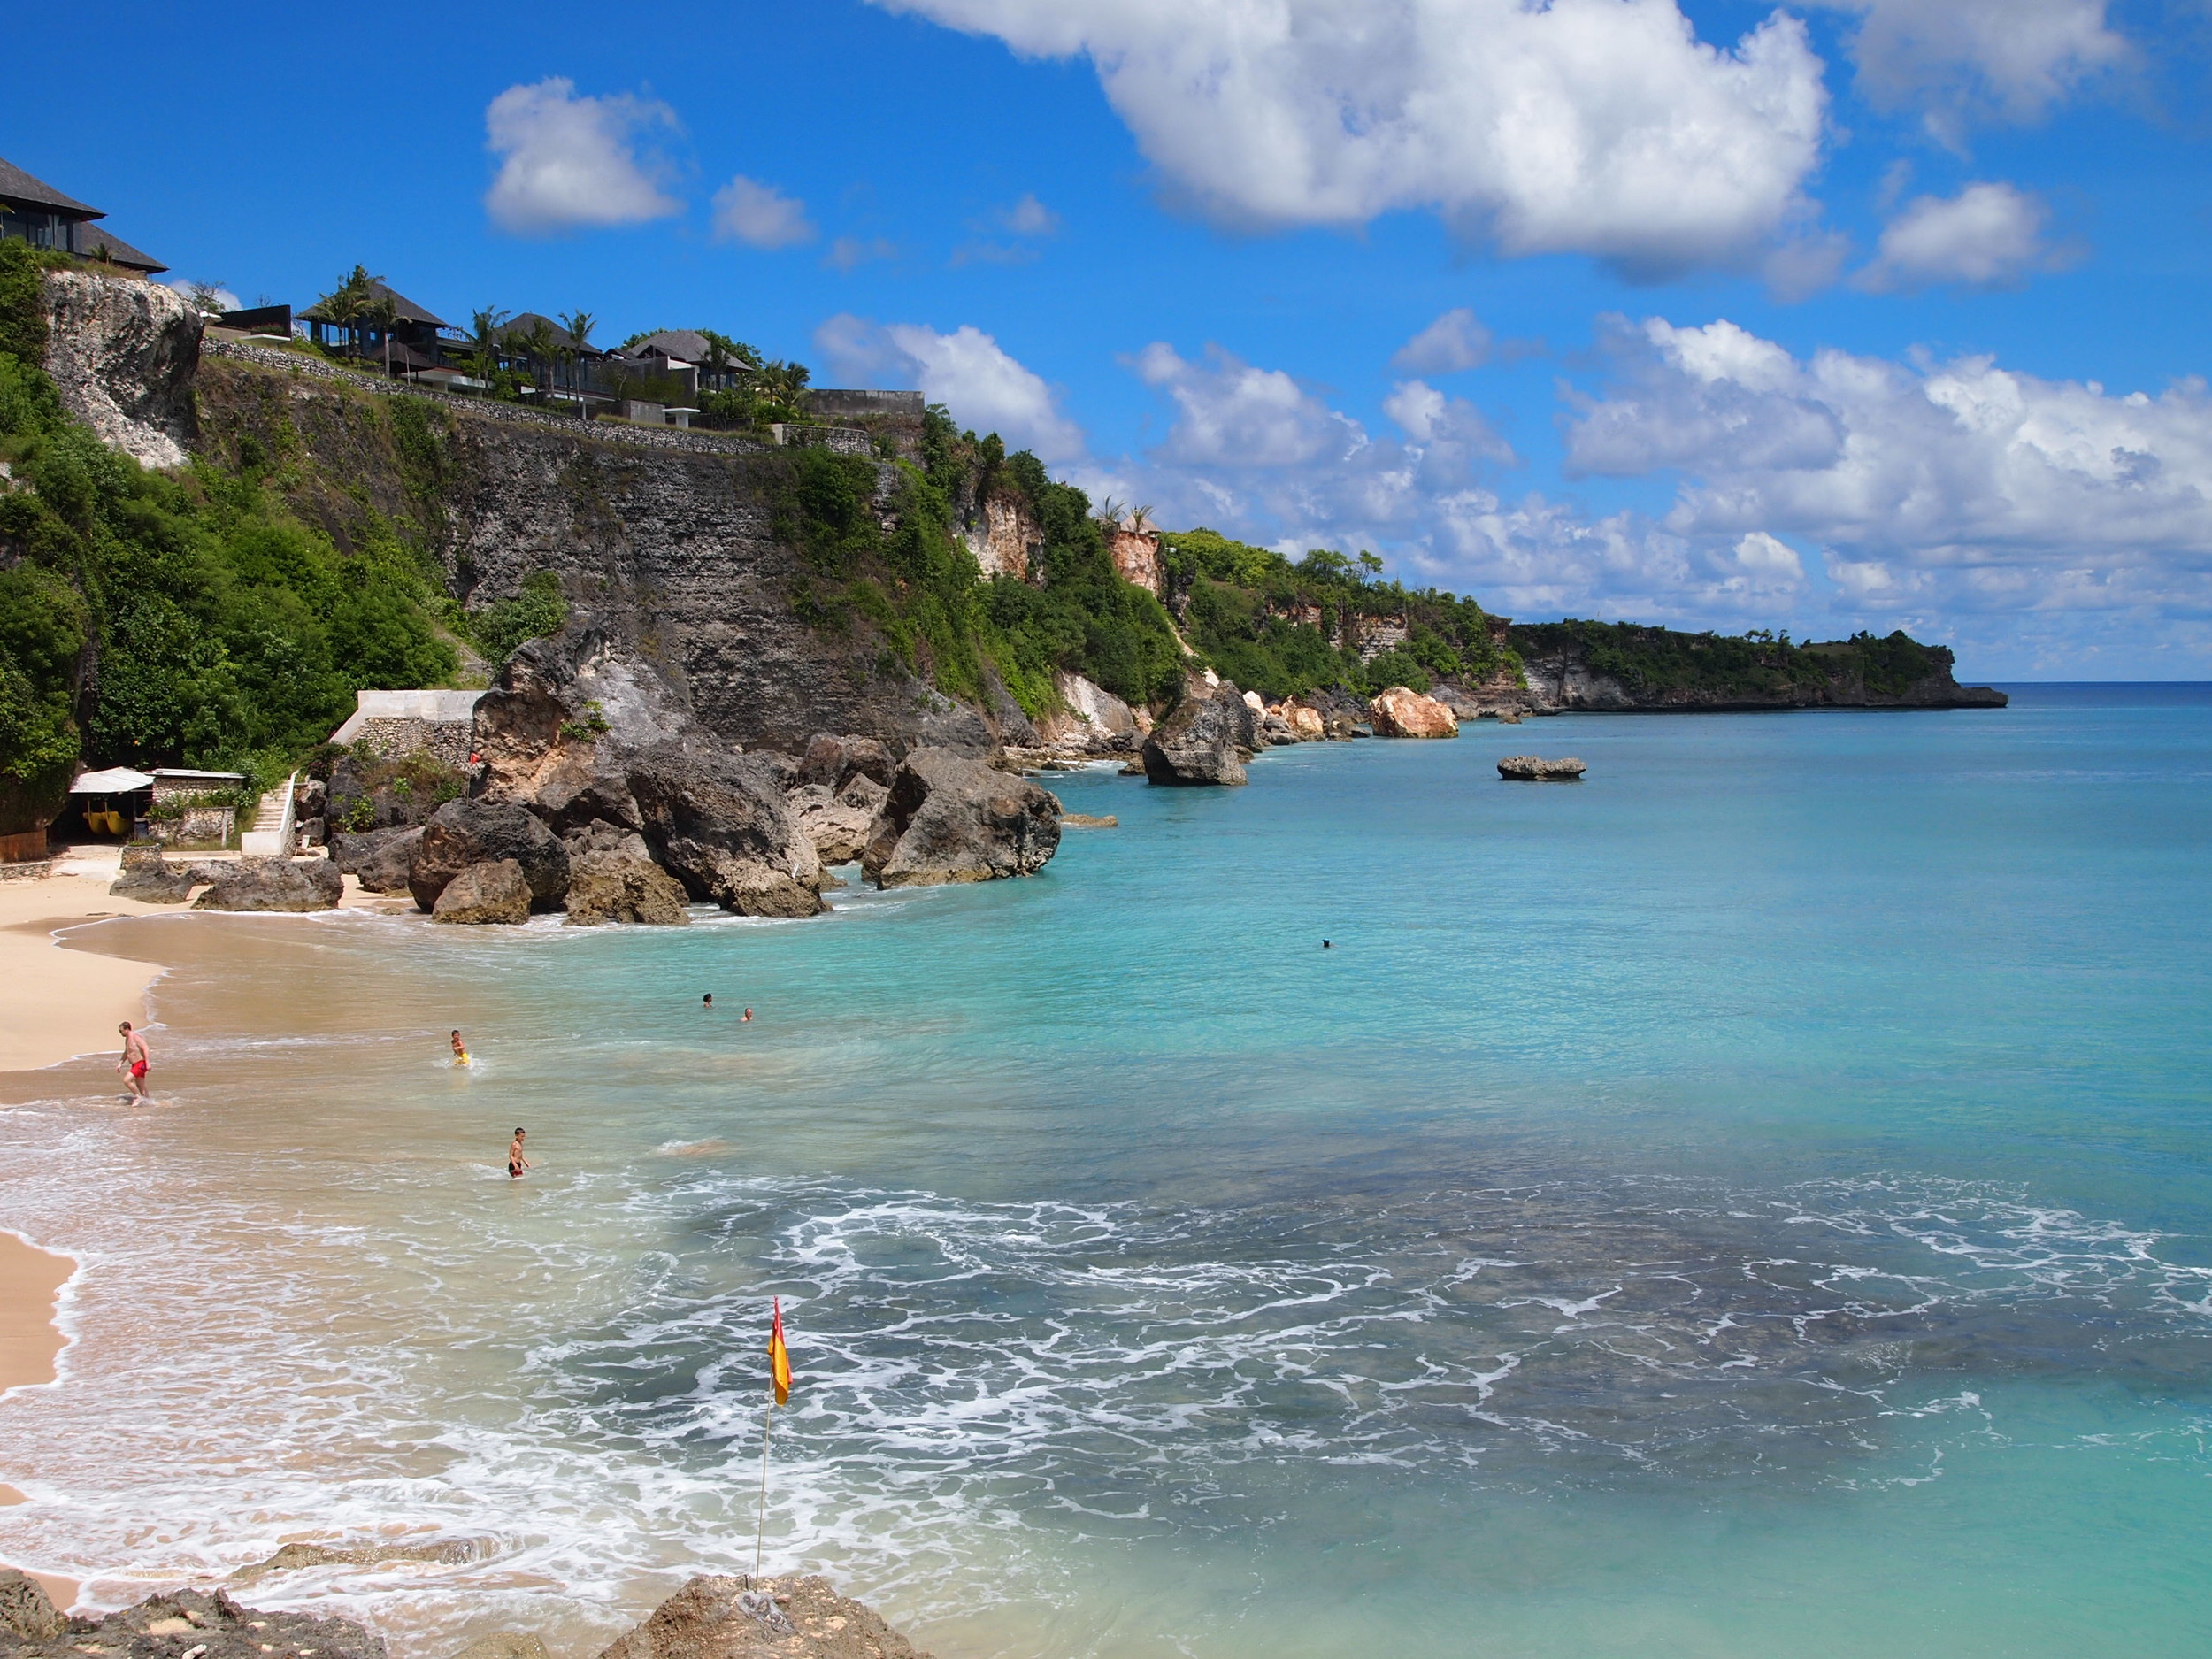 Bali's famous cliffs and, nestled amongst them, theprivate beach for  RIMBA  andAYANA Resorts.